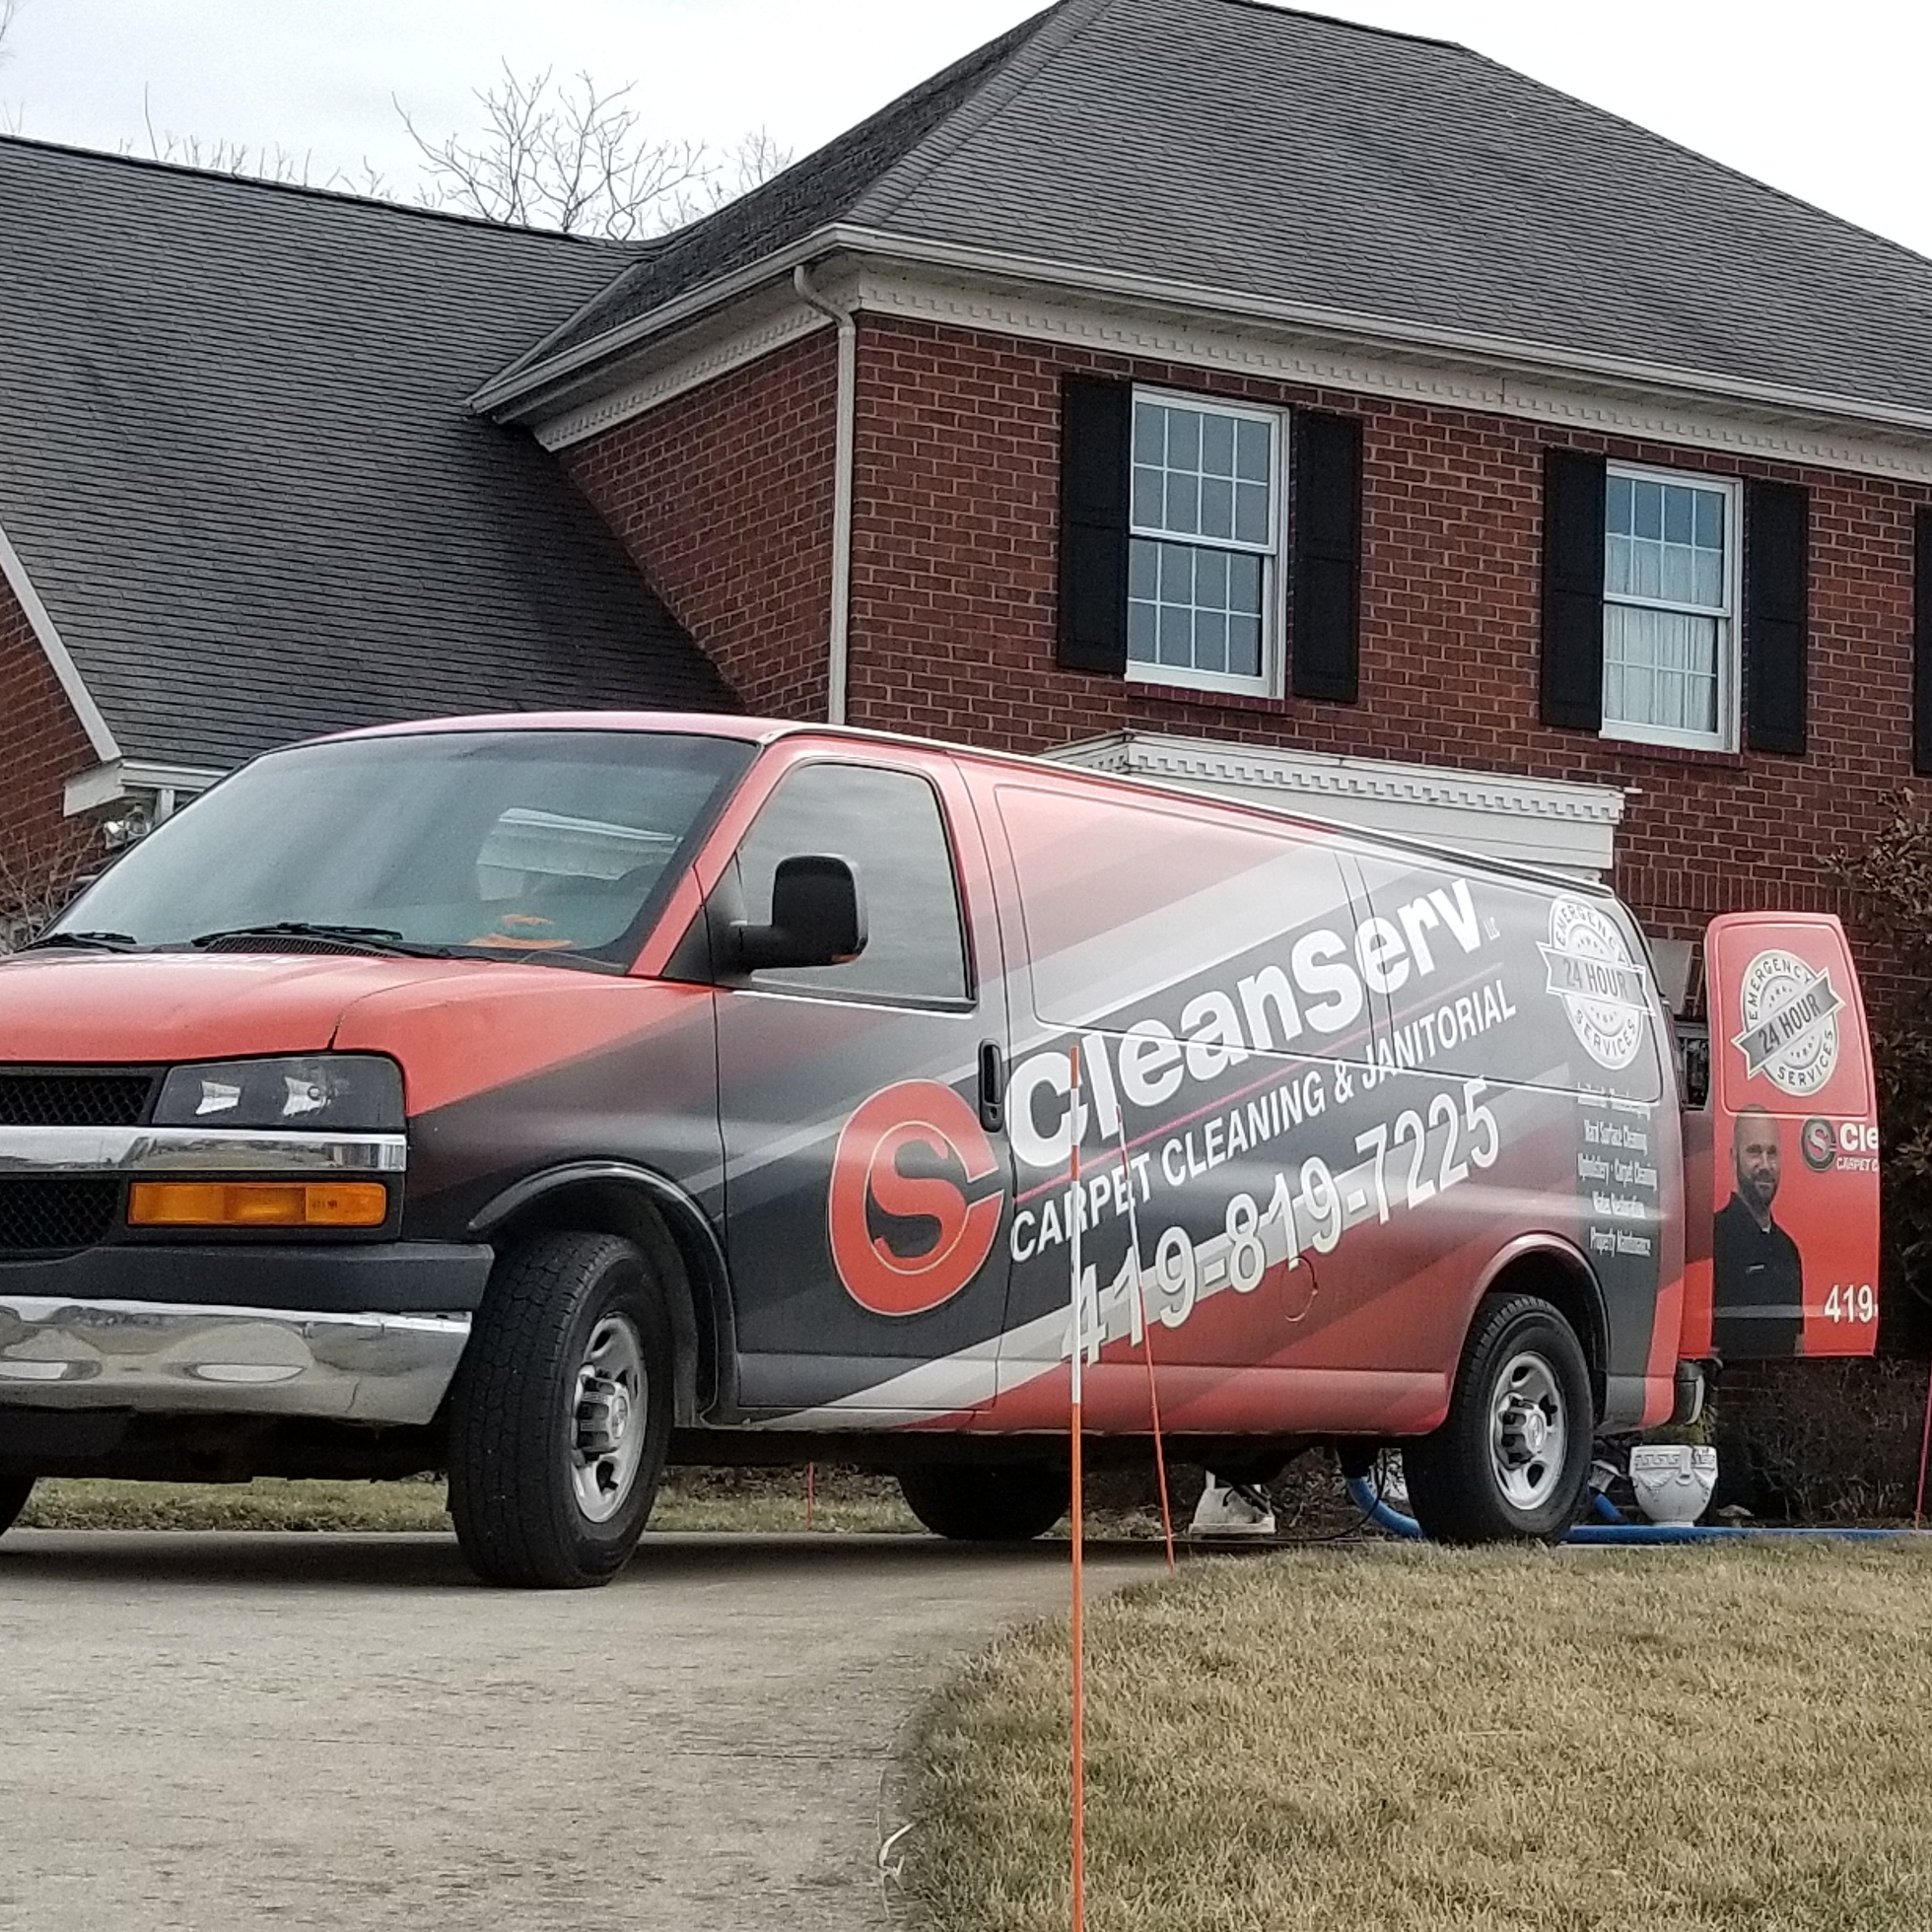 CleanServ Carpet and Janitorial LLC